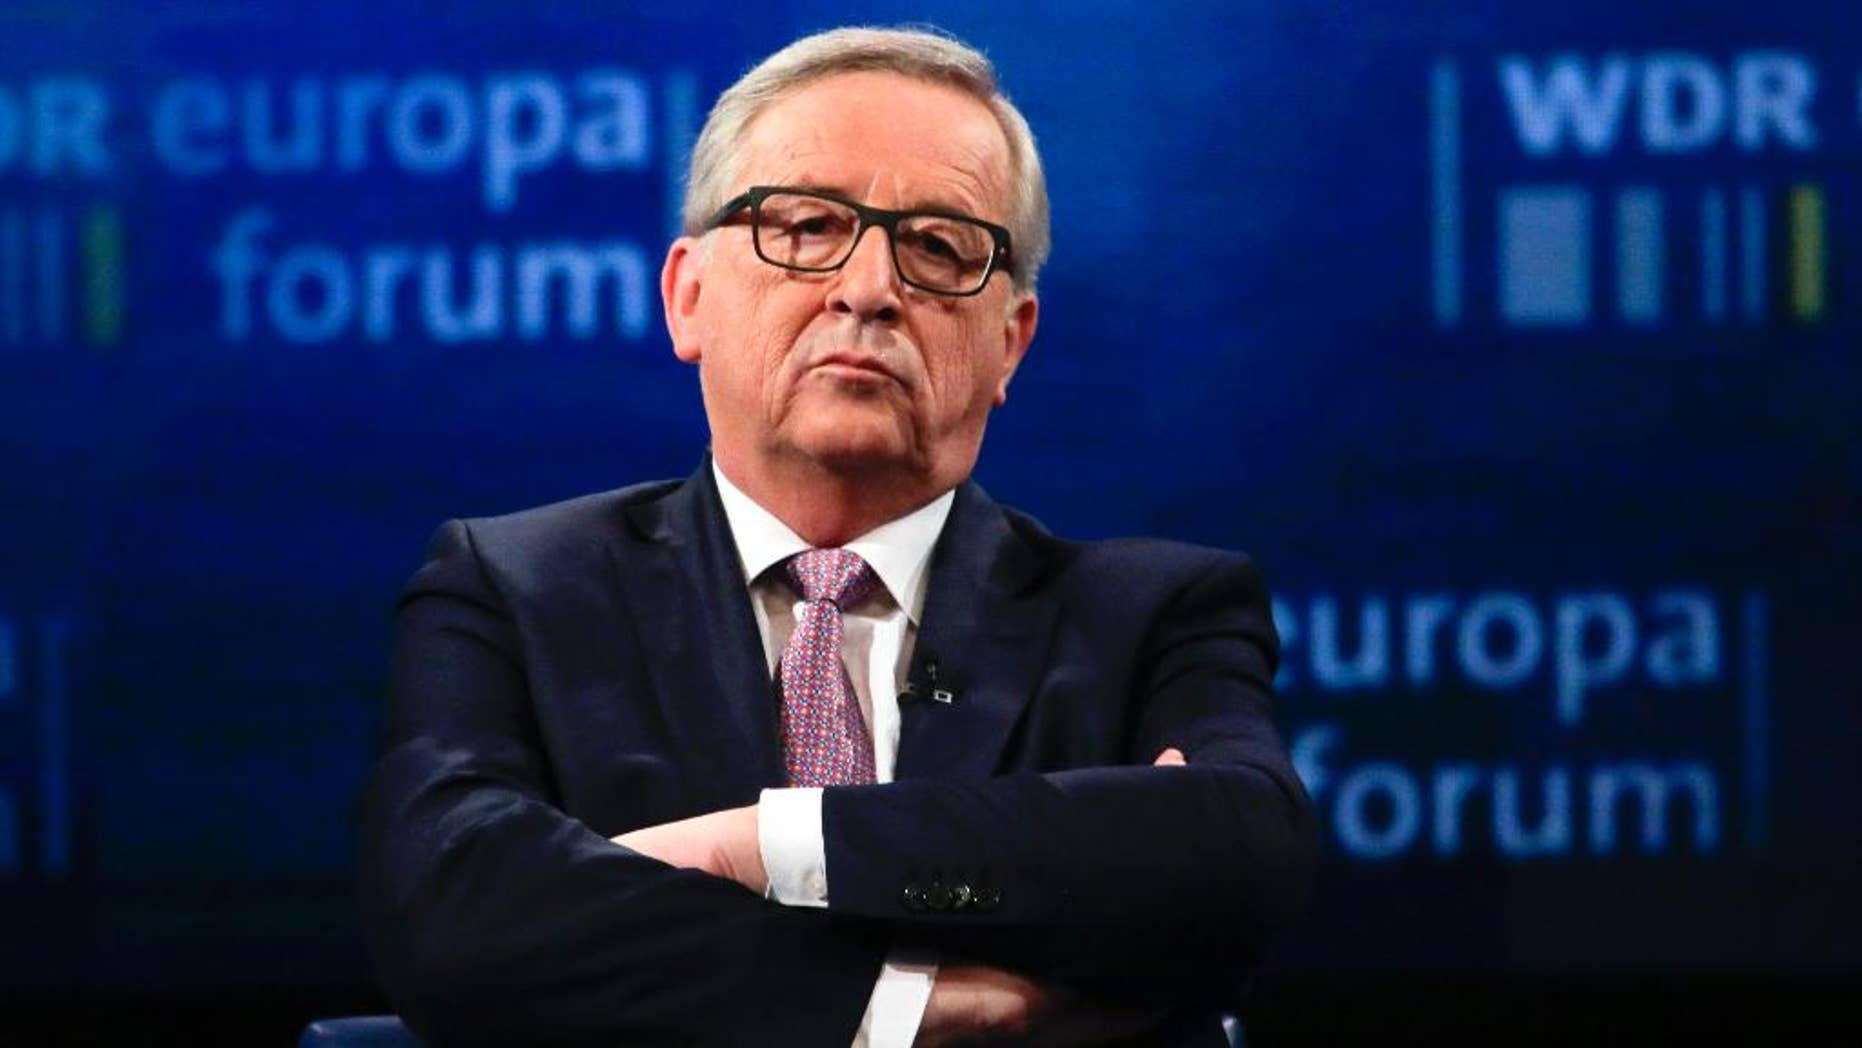 CORRECTS SPELLING OF JUNCKER- The President on the European Commission Jean-Claude Juncker attends a panel discussion about the future of Europe at the Europe Forum event, hosted by the Germany's WDR television and broadcast service, at the Foreign Ministry, in Berlin, Germany, Thursday, May 12, 2016. (AP Photo/Markus Schreiber)